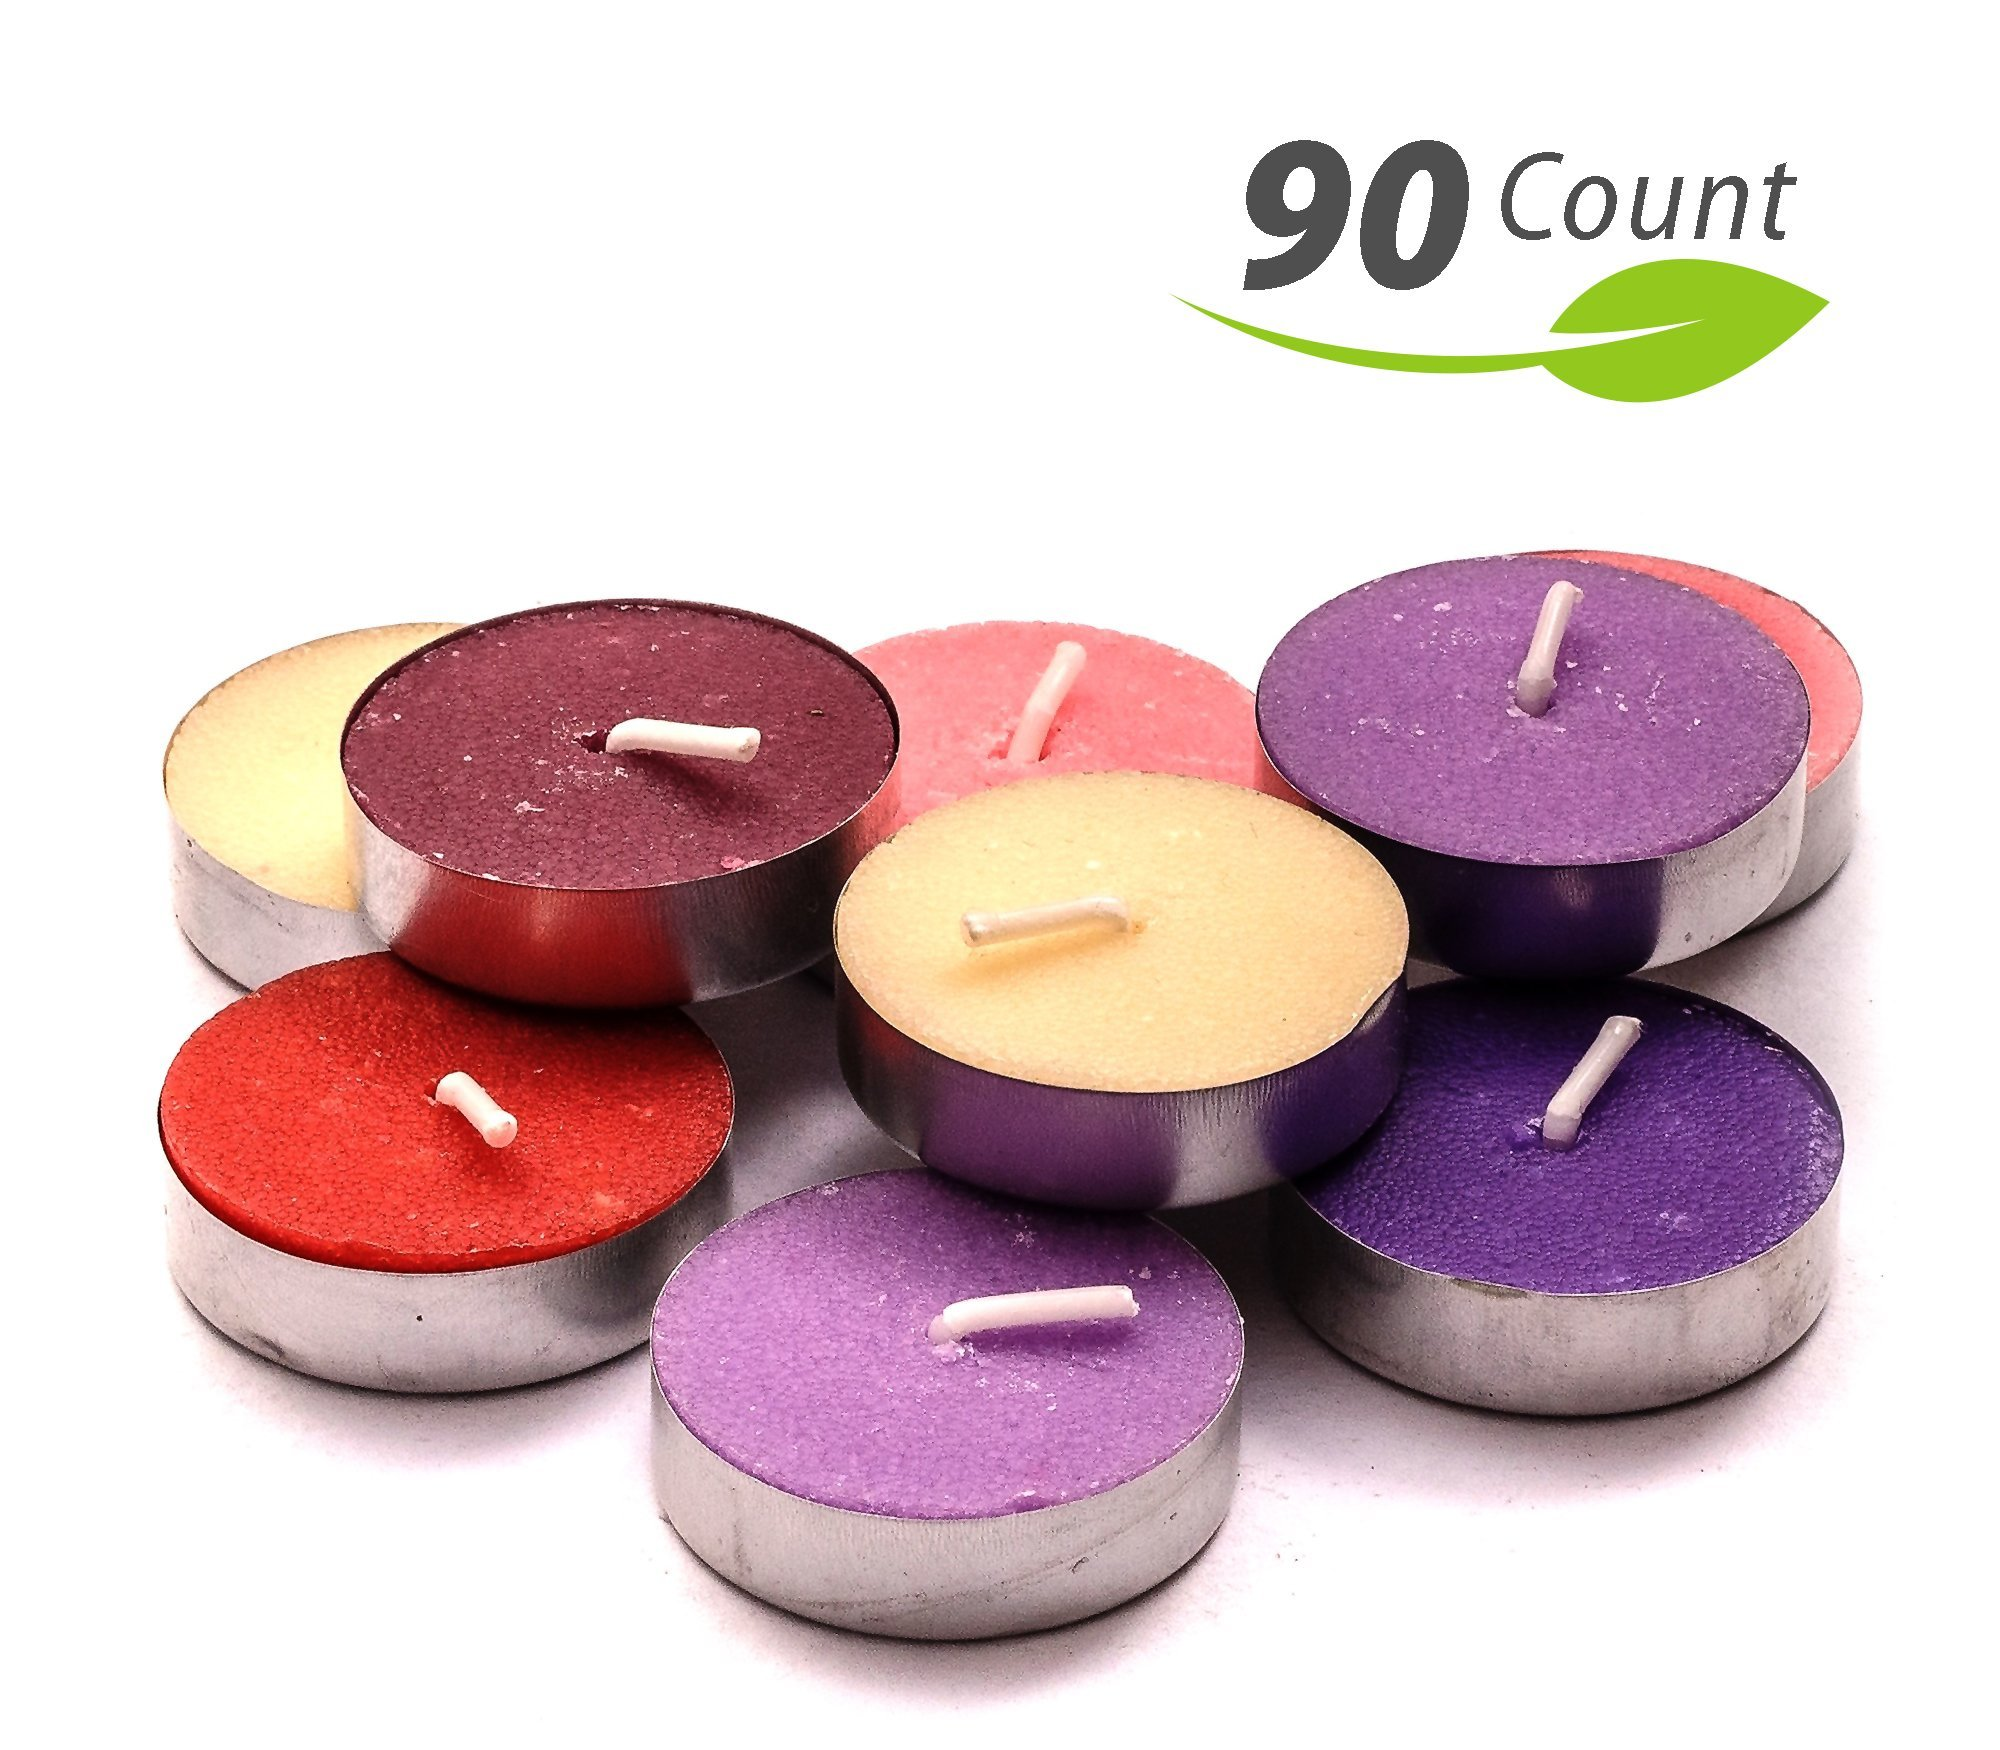 Exquizite Variety Collection - Highly Scented Luxury Tealight Candles - 90 pcs - Set of 15 Tealights with 6 Fragrances - Lavender, French Vanilla, Rose, Apple Cinnamon, Lilac and Black Cherry